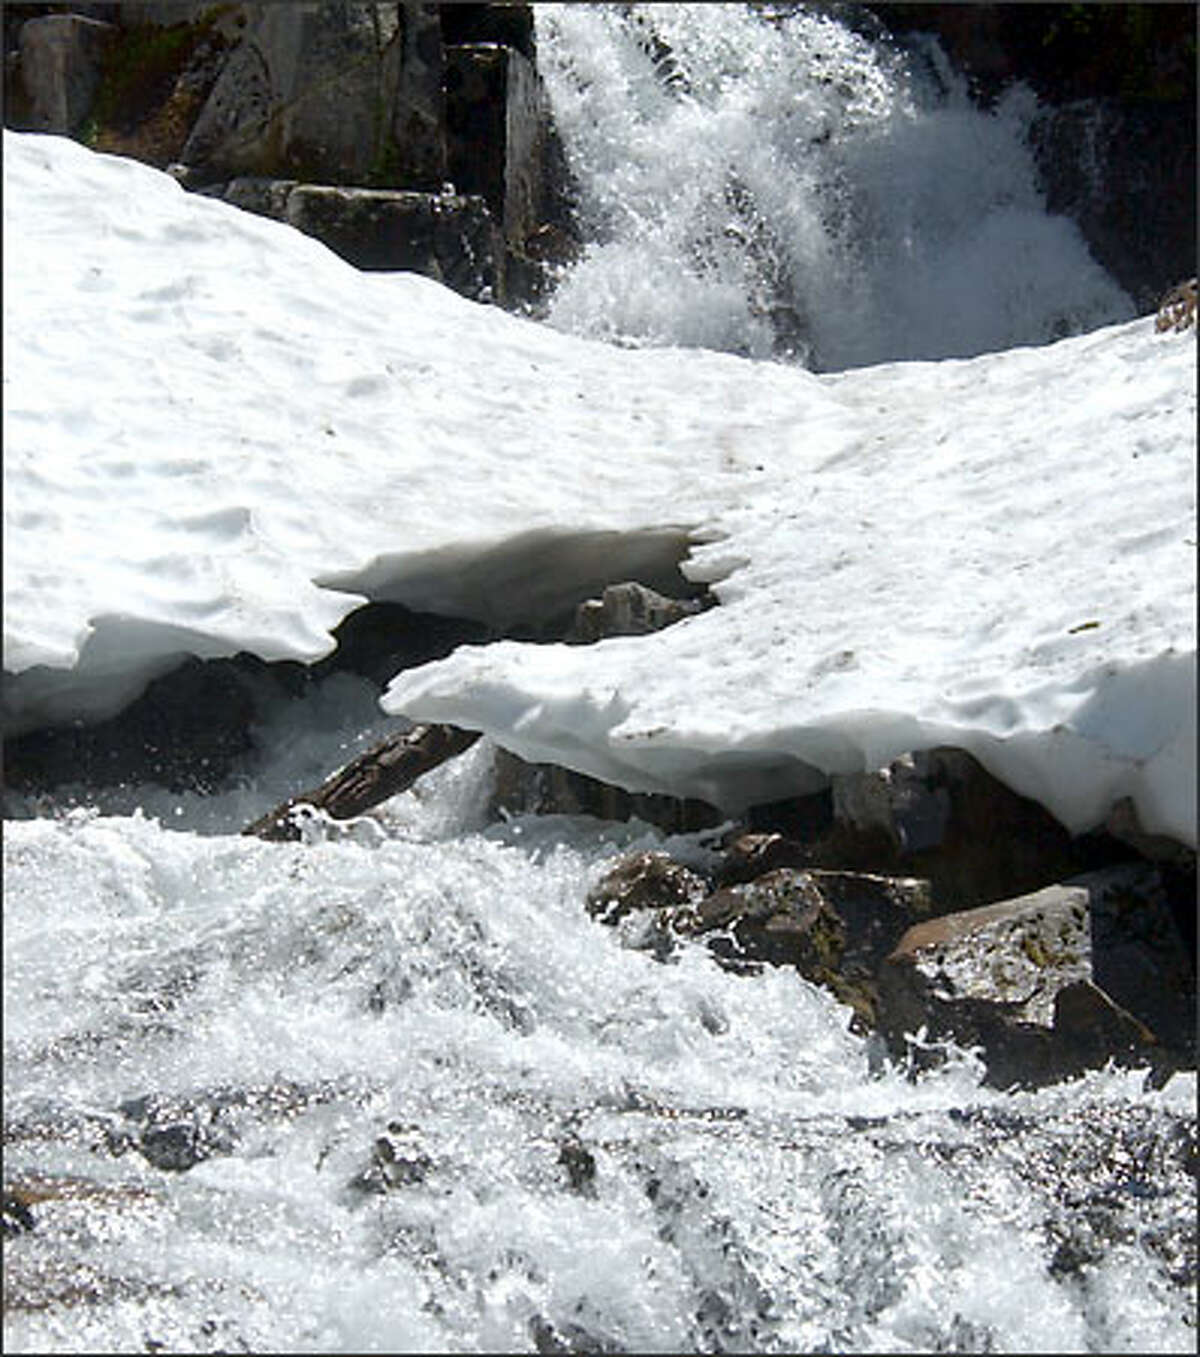 Ninety of 145 sites in the Cascade and Olympic mountains studied over a 42-year period showed declines of water content in snow of 25 percent or more.